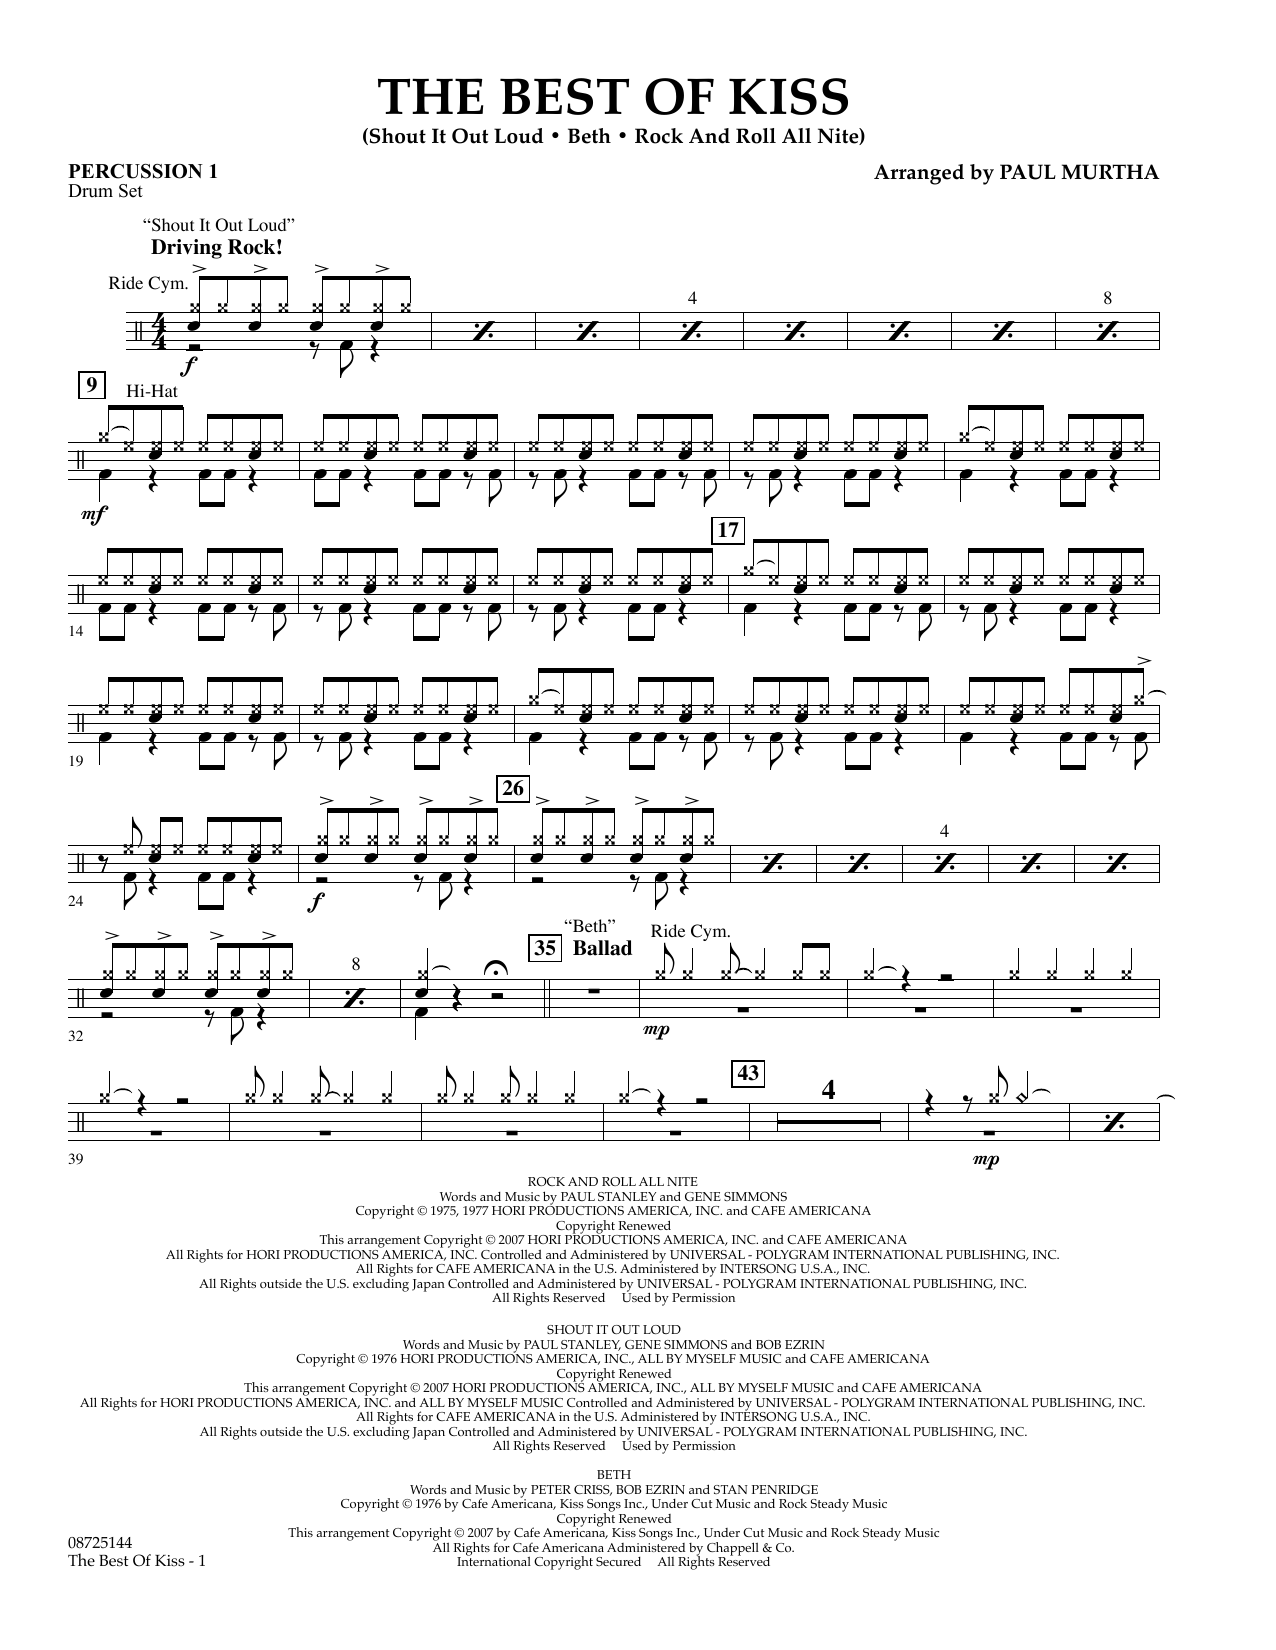 Paul Murtha The Best of Kiss - Percussion 1 sheet music preview music notes and score for Concert Band including 2 page(s)